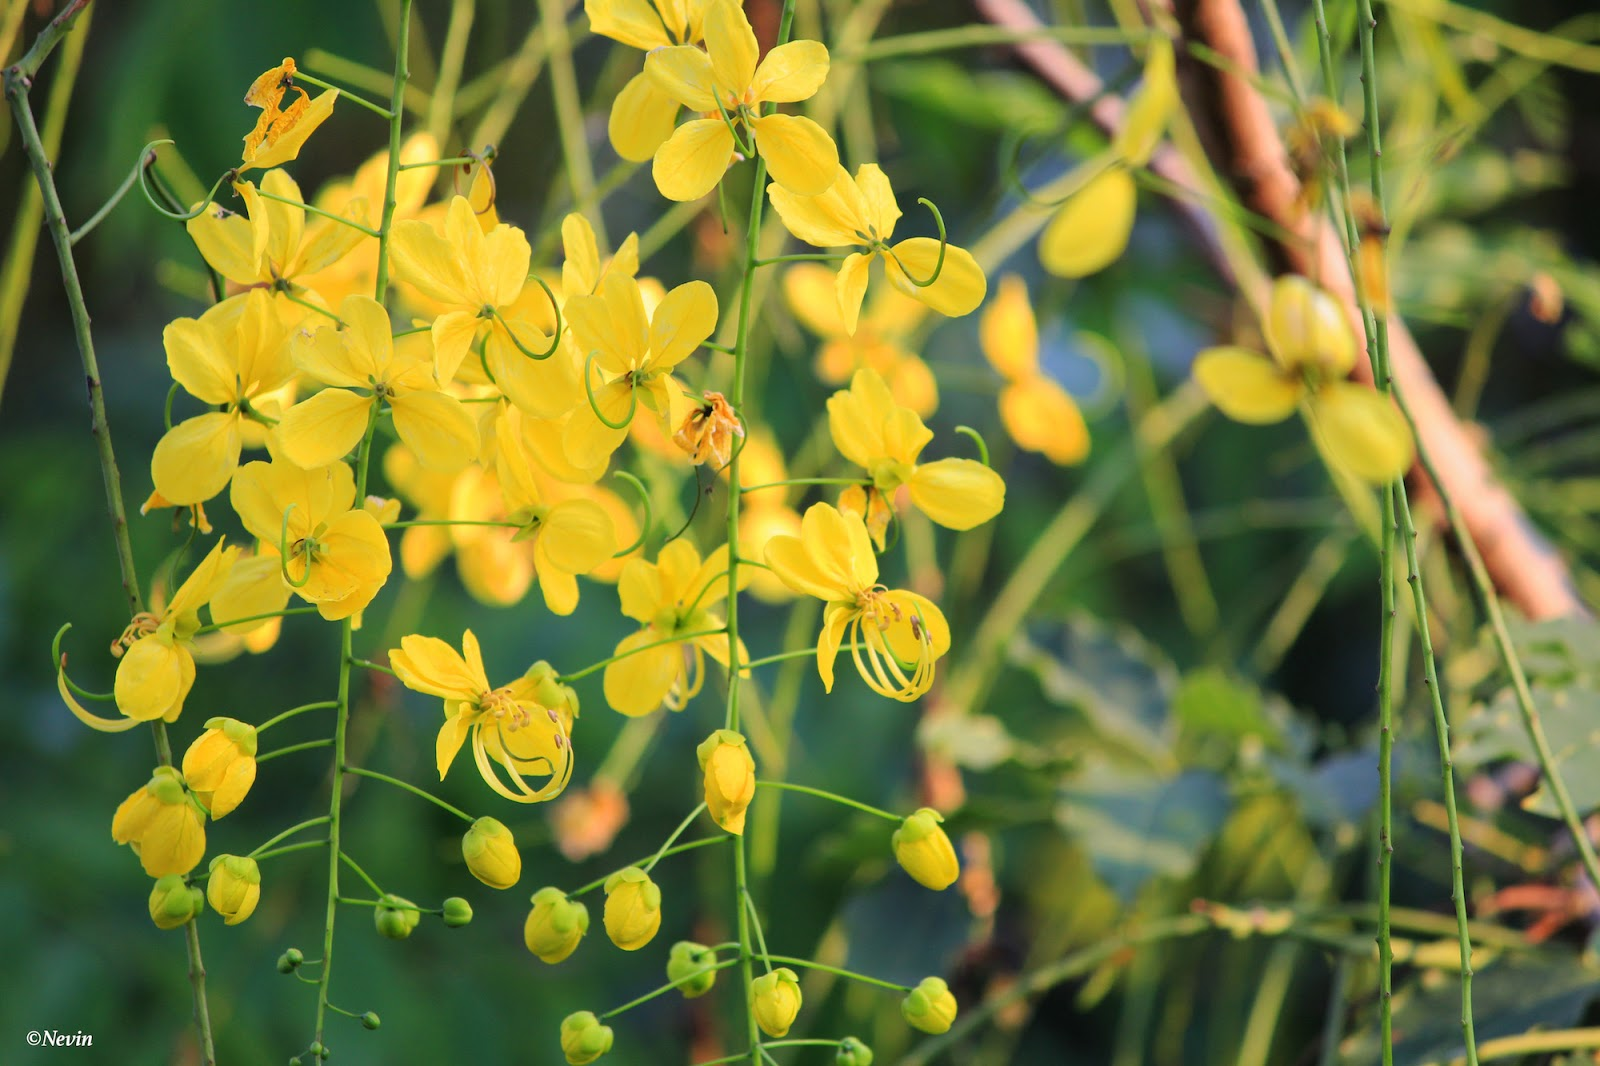 Beautiful Flowers Of The Golden Shower Tree Through The Lens